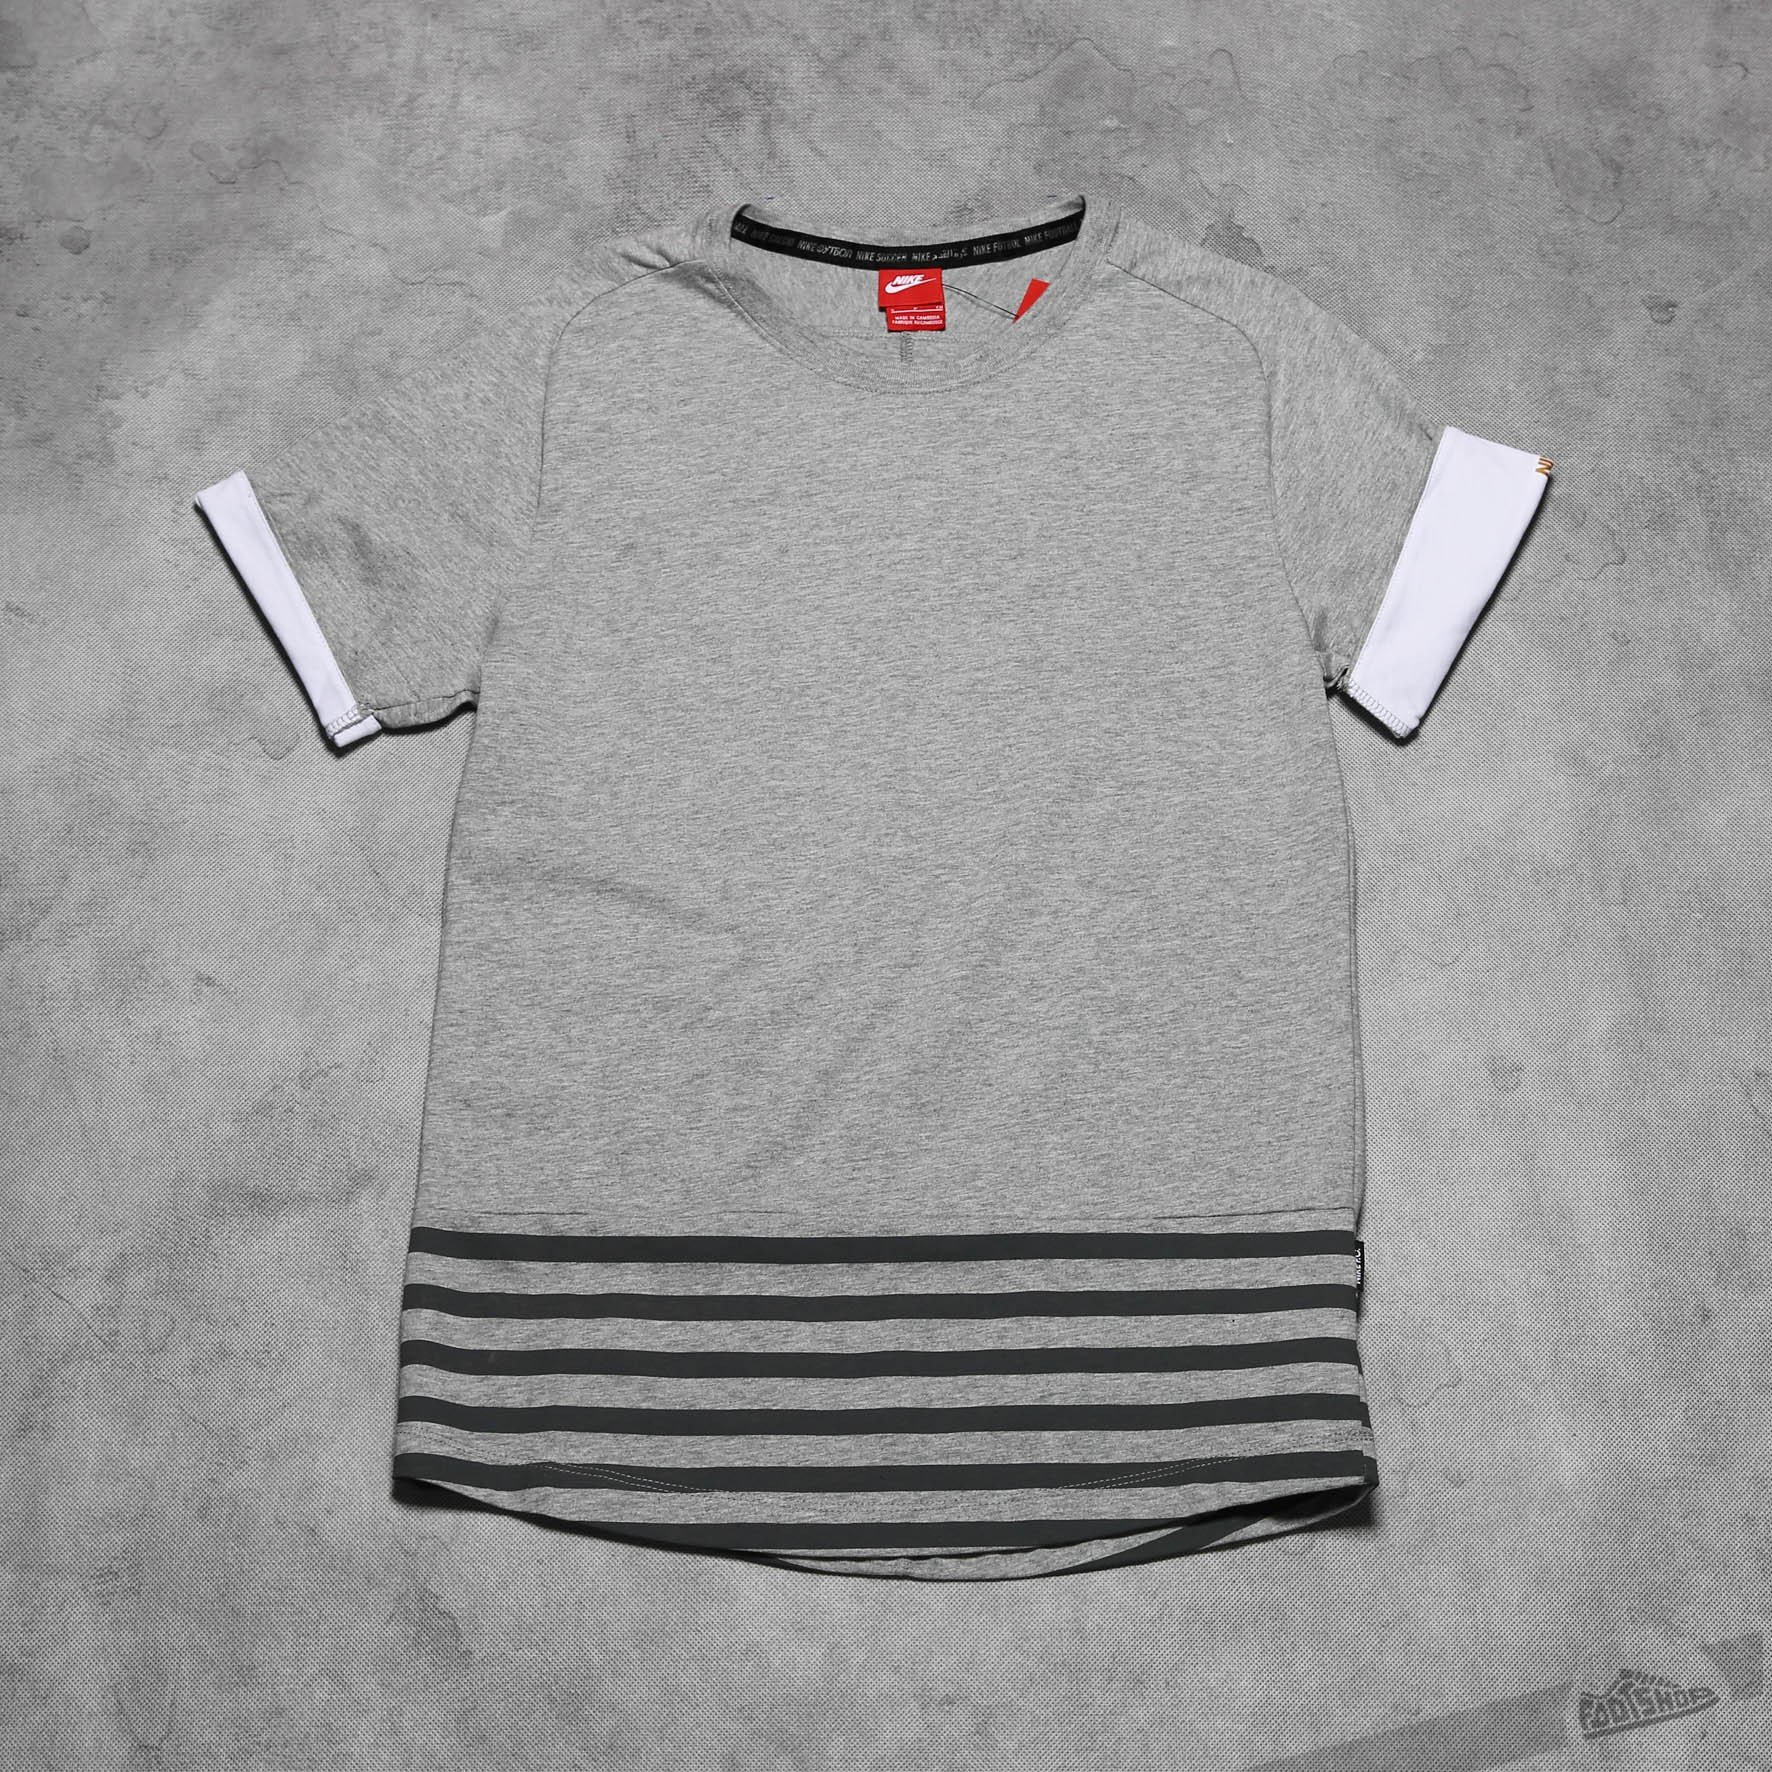 0d713a857511 Nike FC Sideline Top Grey